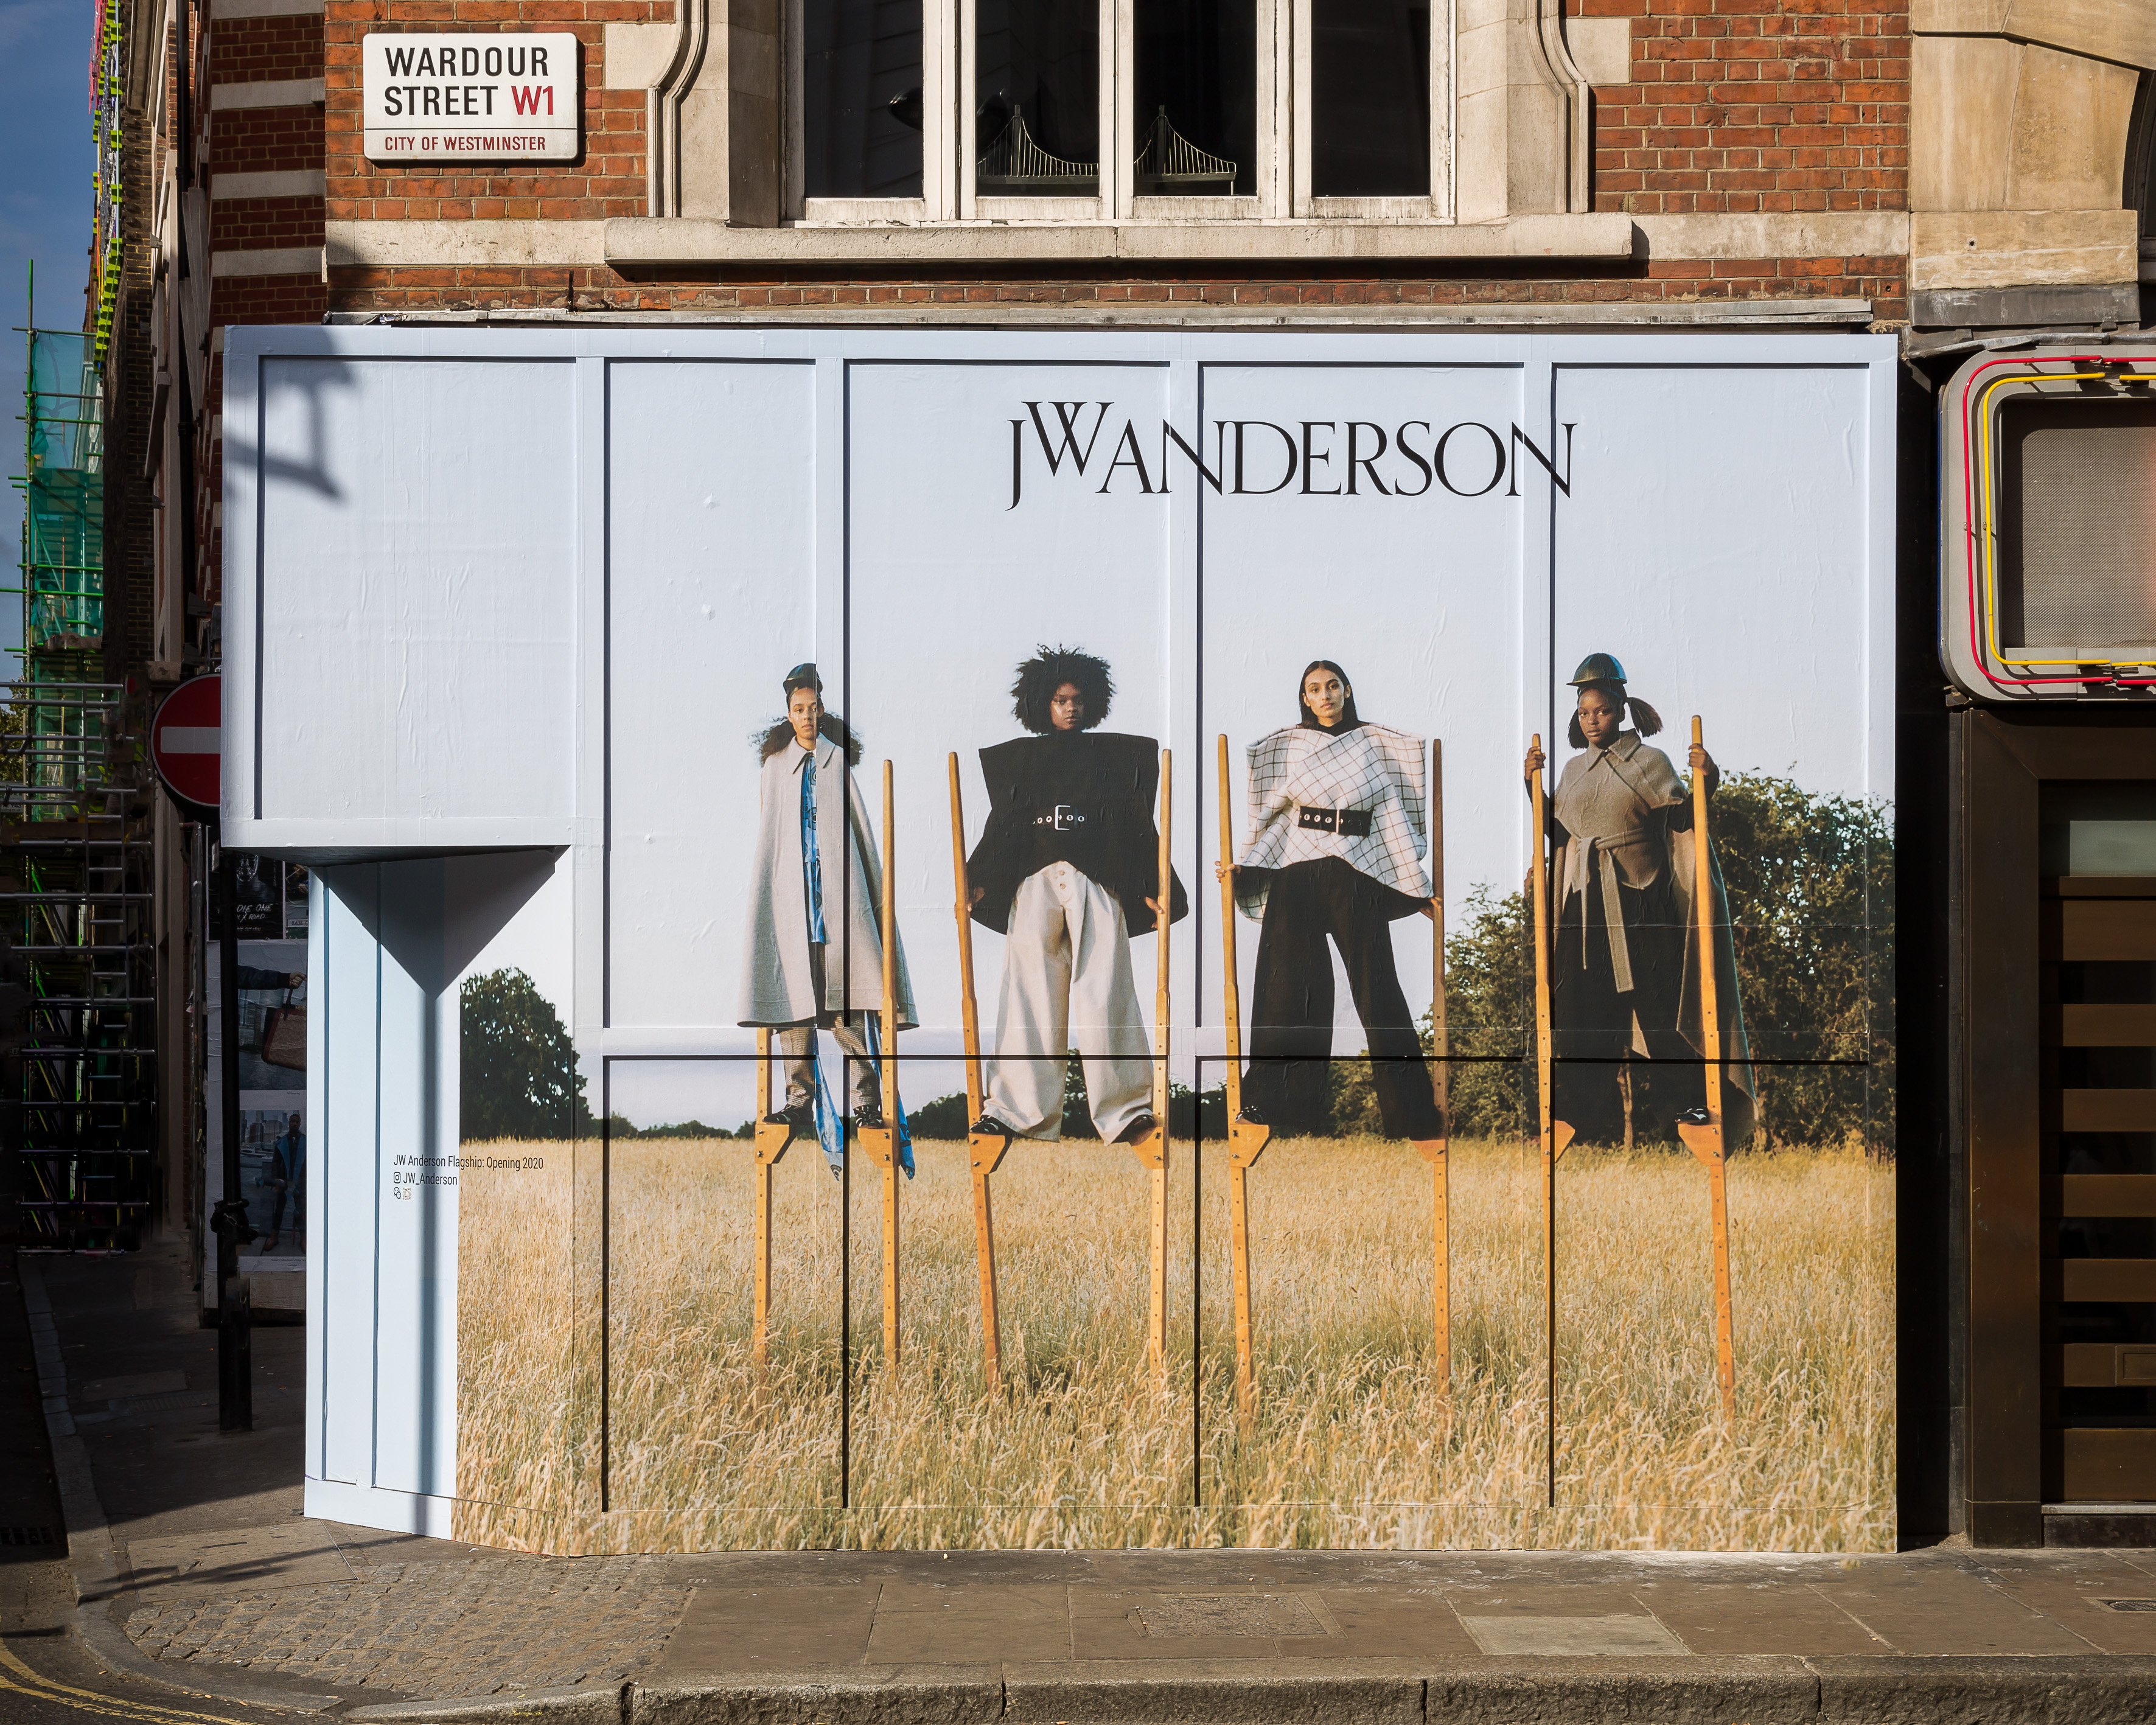 The hoarding outside JW Anderson's store, which is set to open in February 2020.